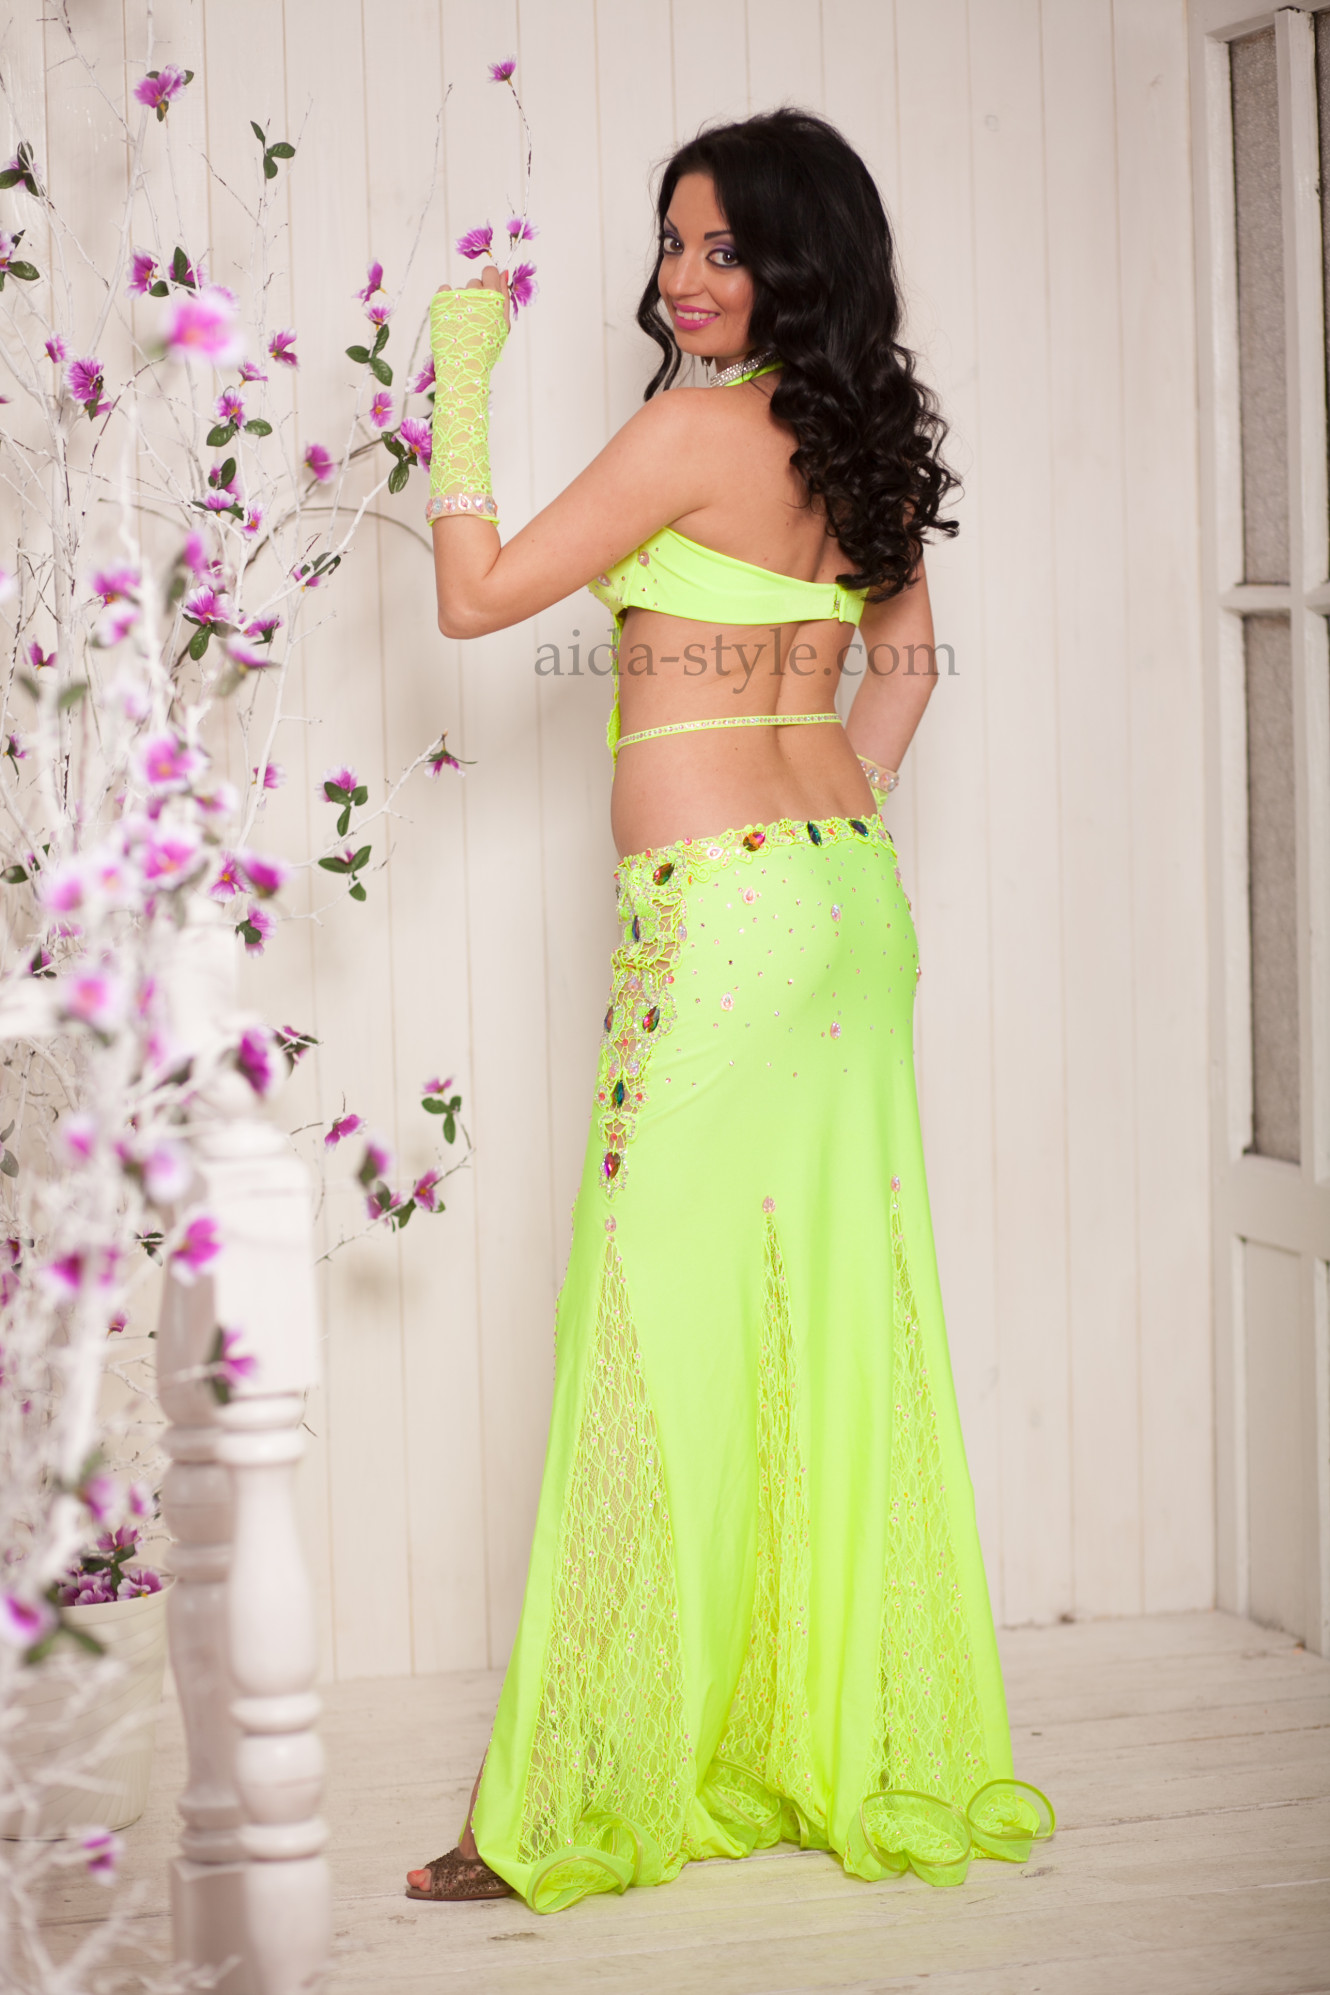 Professional belly dance costume in lemon color. The dress has a cut on the left side and a decoration that goes accross belly